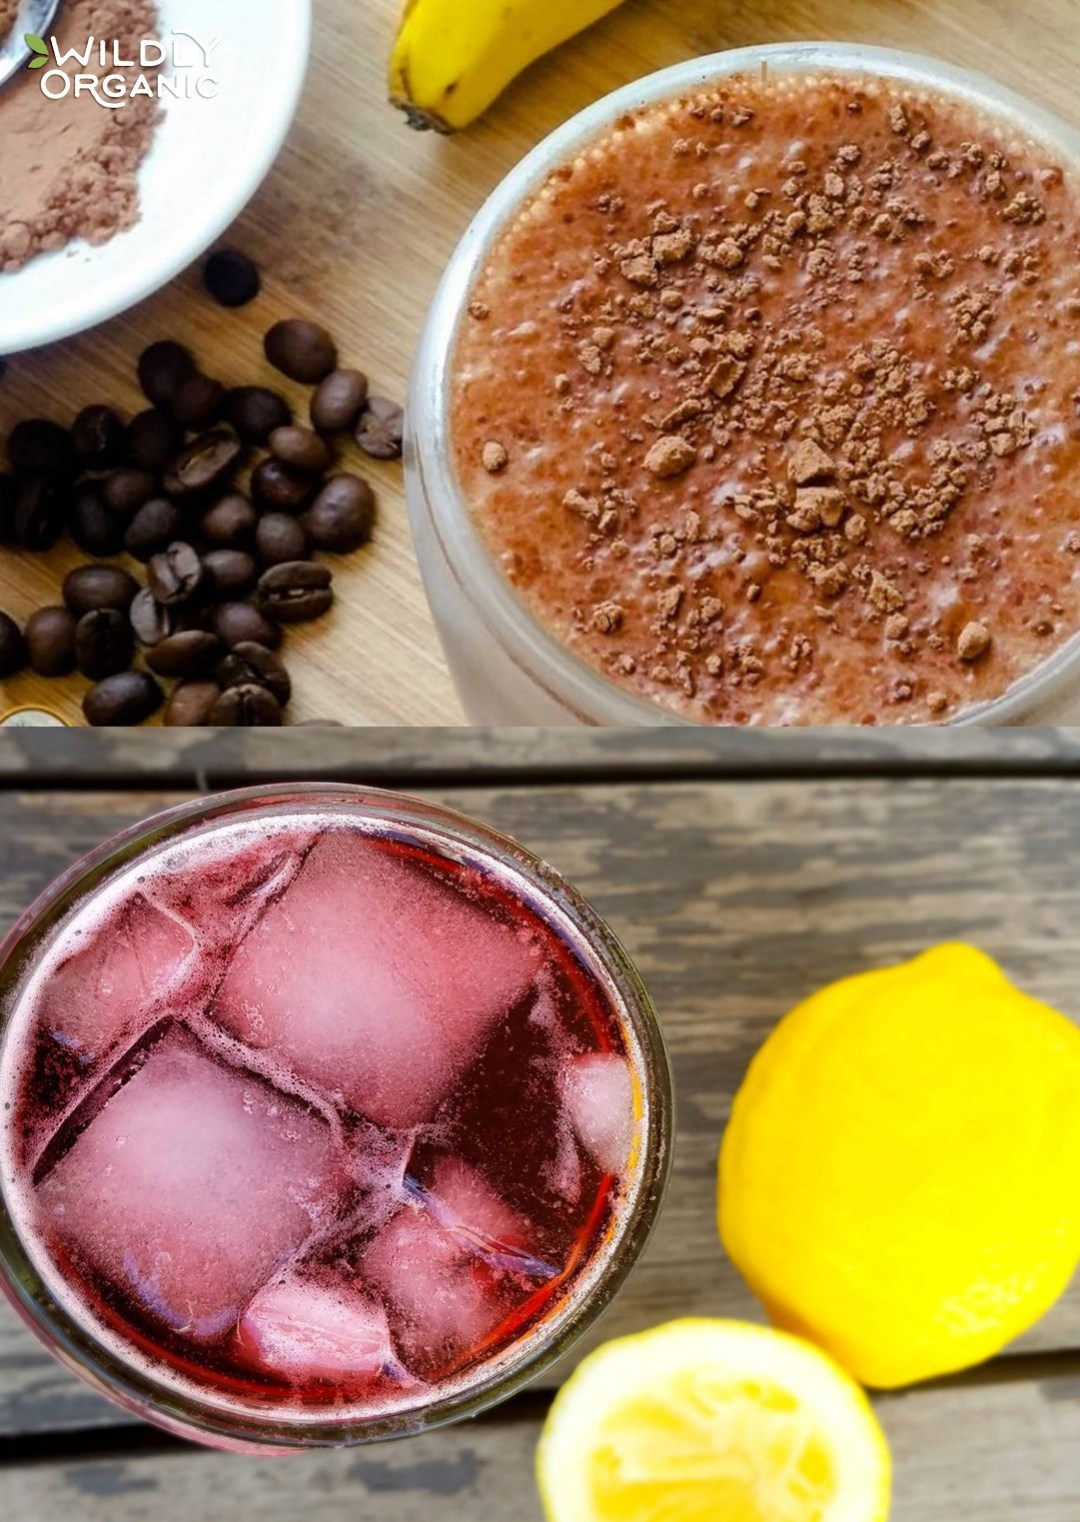 Don't reach for sugar-laden sports drinks, instead make your own refreshing drinks at home that are hydrating, filling and delicious, too. From fruit forward smoothies to refreshing chia frescas, these thirst-quenching drinks for hot days are made with real food ingredients that are good for you and will keep you going all summer long! #drinks #beverages #glutenfree #dairyfree #allergyfriendly